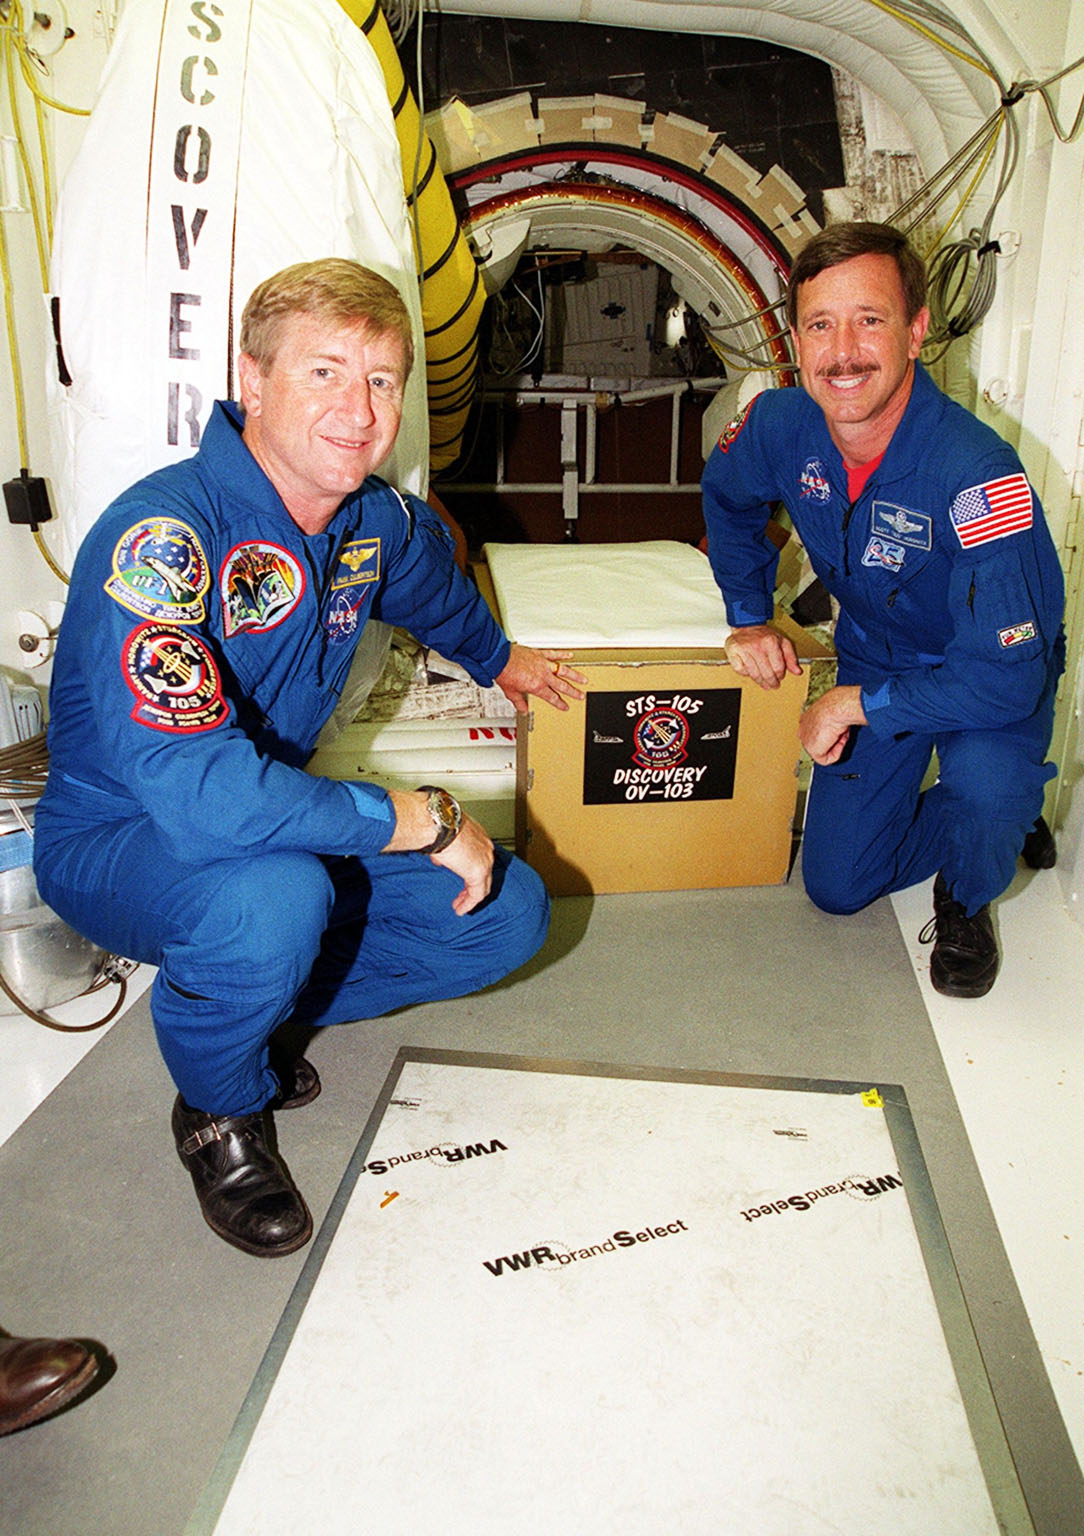 KENNEDY SPACE CENTER, Fla. -- Expedition Three Commander Frank Culbertson (left) and STS-105 Commander Scott Horowitz (right), in the White Room at Launch Pad 39A, have placed the mission sign at the entrance into Space Shuttle Discovery. Both crews are at KSC to take part in Terminal Countdown Demonstration Test activities, which include emergency egress training, a simulated launch countdown and familiarization with the payload. Mission STS-105 will be transporting the Expedition Three crew, several payloads and scientific experiments to the International Space Station aboard Discovery. The current Expedition Two crew members on the Station will return to Earth on Discovery. Launch of Discovery is scheduled no earlier than Aug. 9, 2001